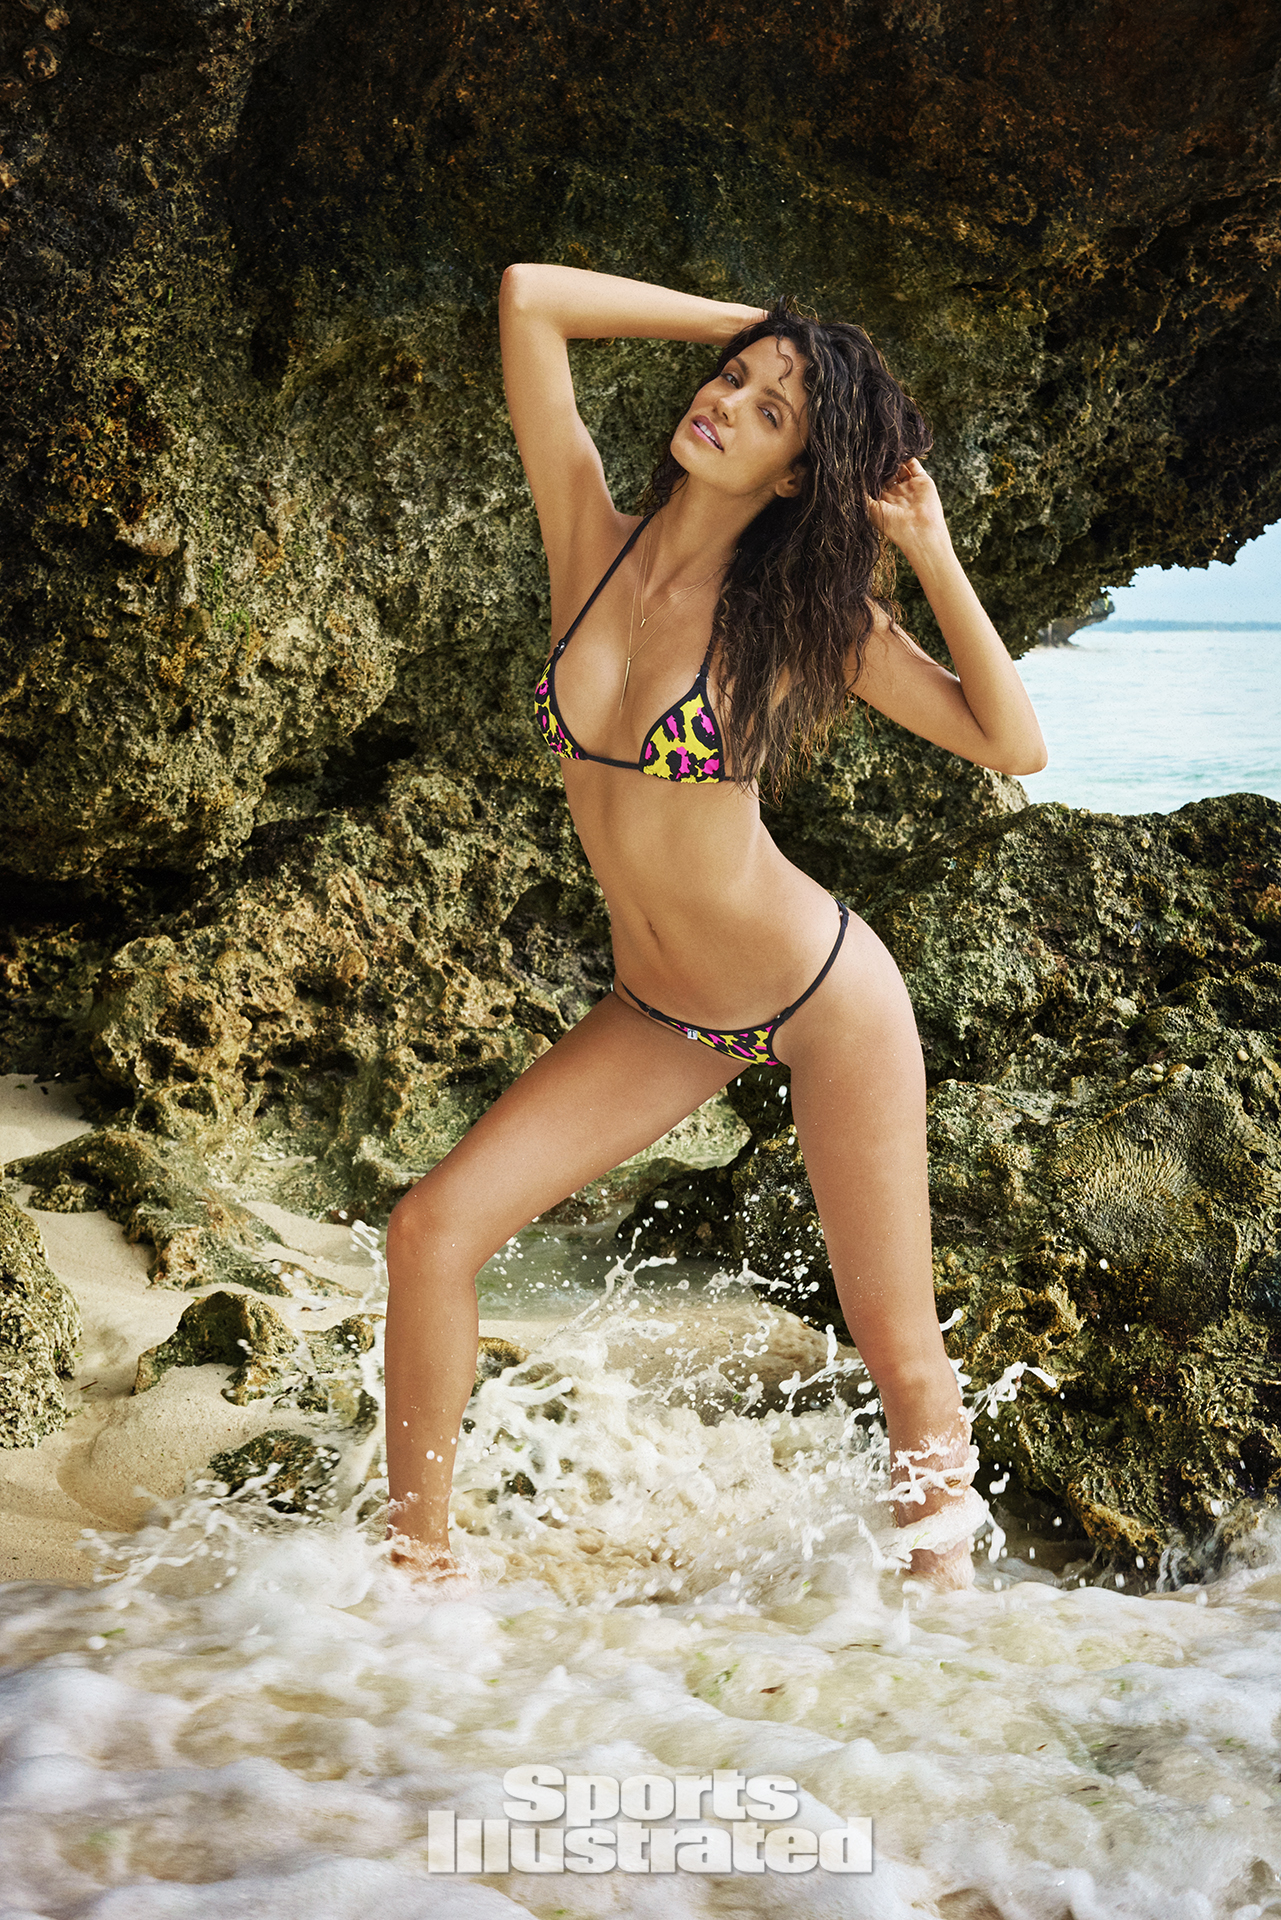 Sofia Resing was photographed by Ruven Afanador in Zanzibar. Swimsuit by TeenyB Bikini Couture.